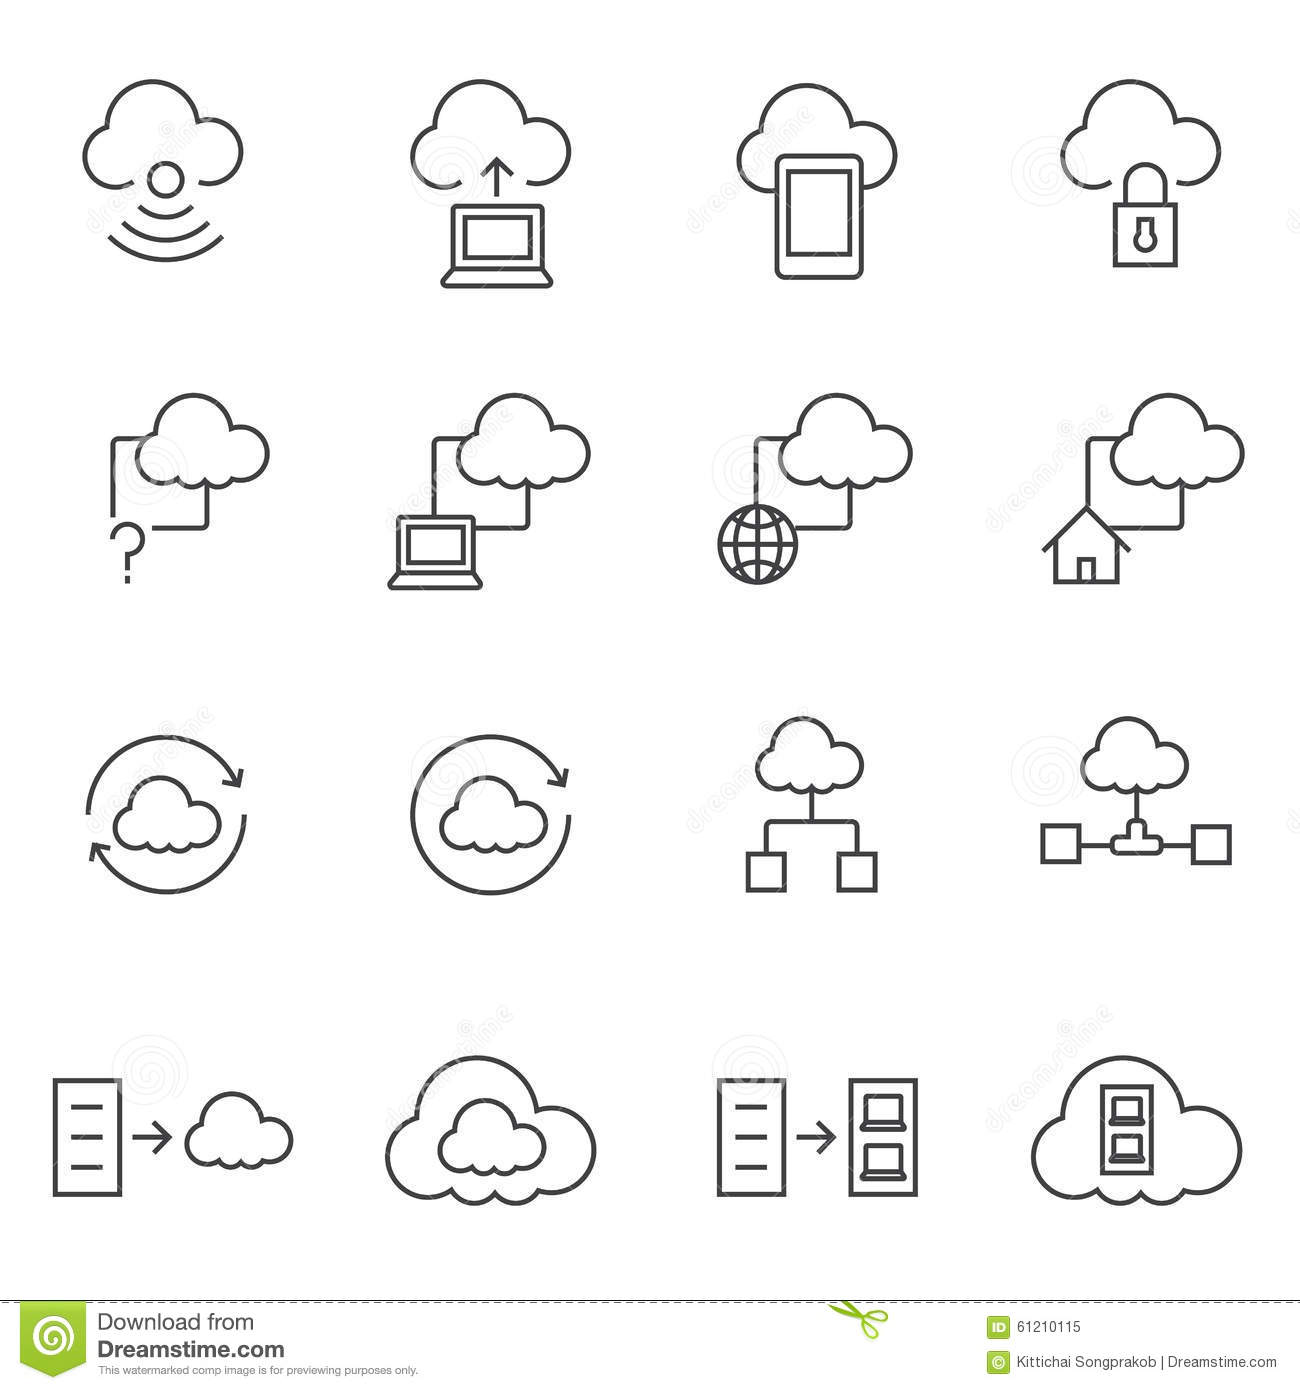 Updated Version Of The Microsoft Azure Icons For Visio Pack besides Stock Images  puter Cloud Vector Icons Set Web Black Clouds Screen Image34948164 together with Man People Athletic Gym Gymnasium Body Building Exercise Healthy Training Fitness Workout Sign Symbol Pictogram 5635 additionally Local area  work Gigabit ether   working Nics Scott mueller 2 263 4 further TL WR740N. on data center network security